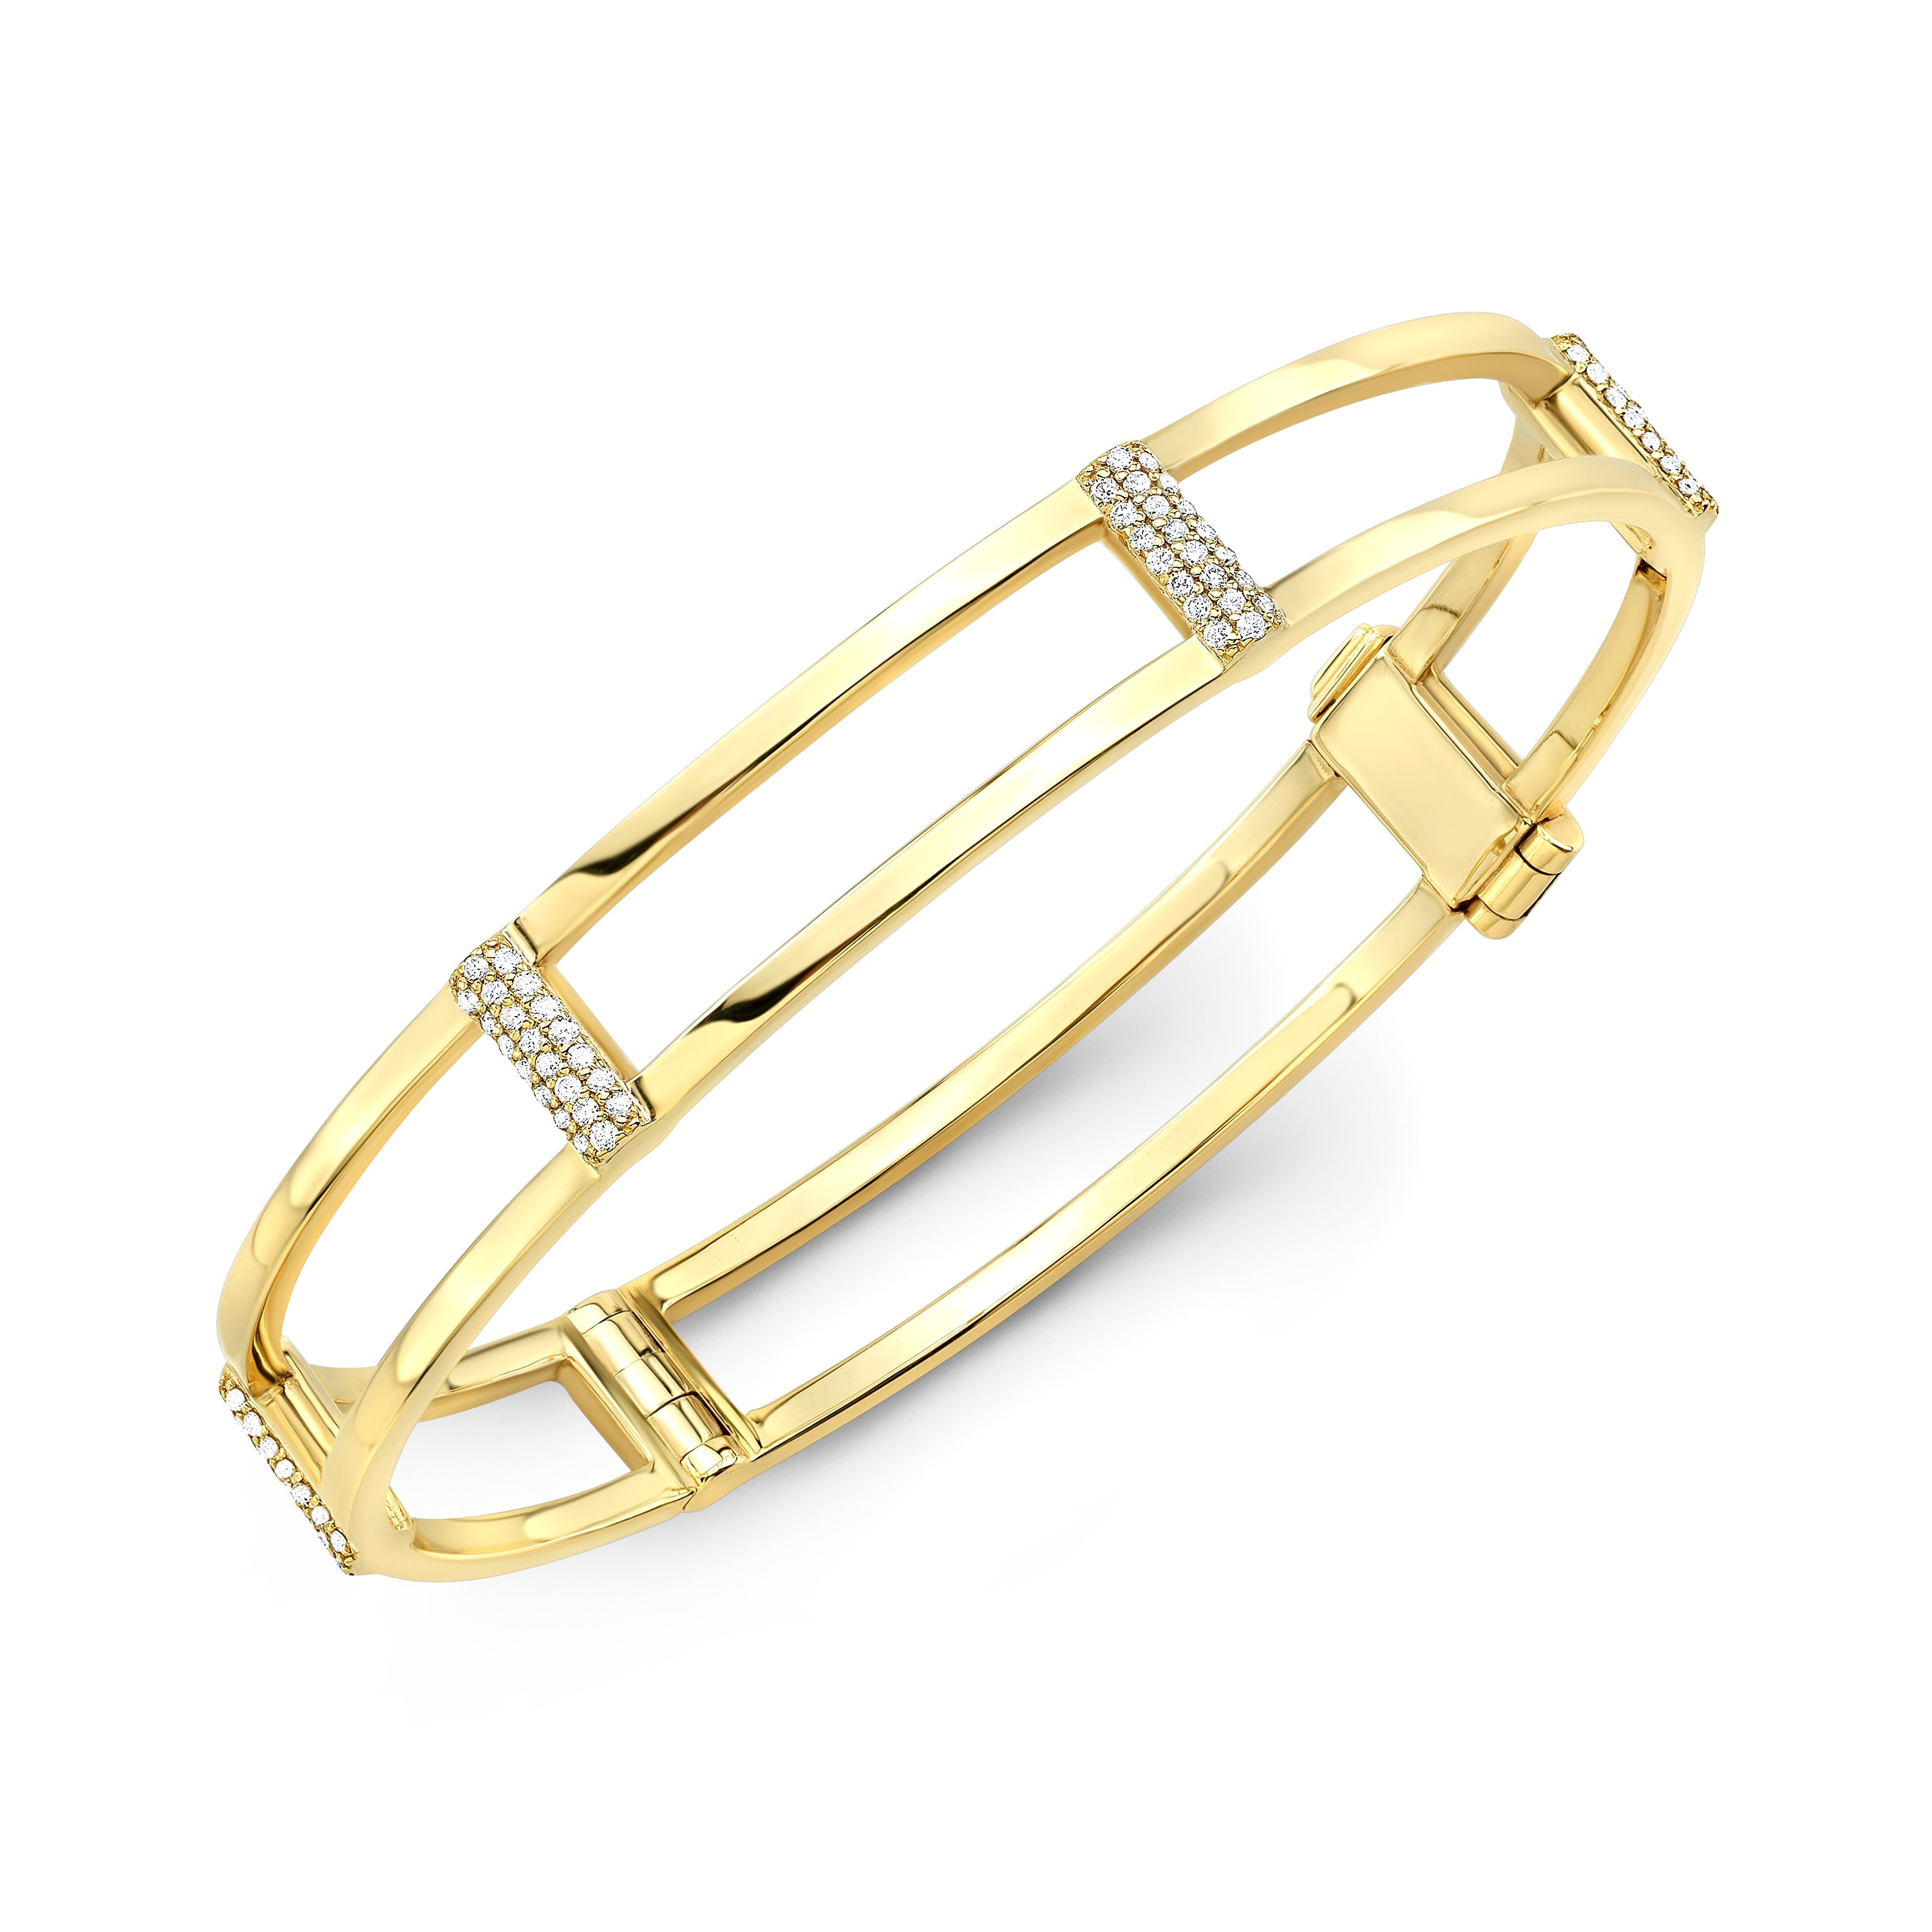 Locking Cage Bracelet | Yellow Gold with White Diamonds on Posts